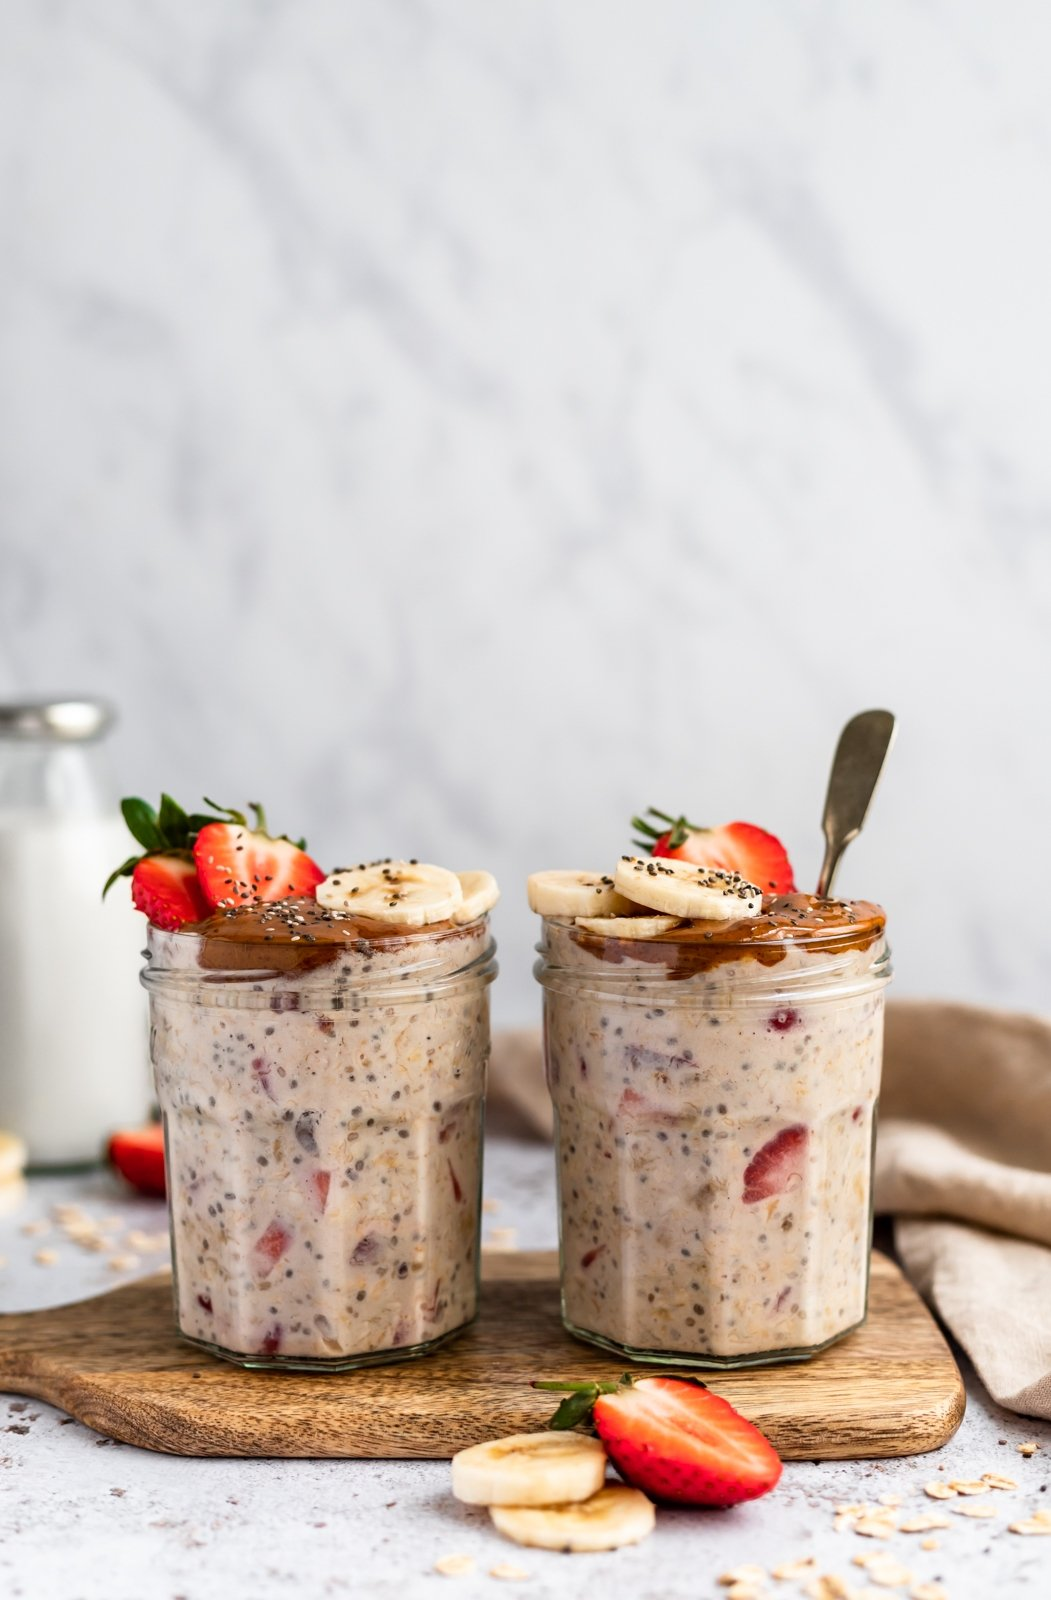 almond butter, strawberry and banana overnight oats in two jars